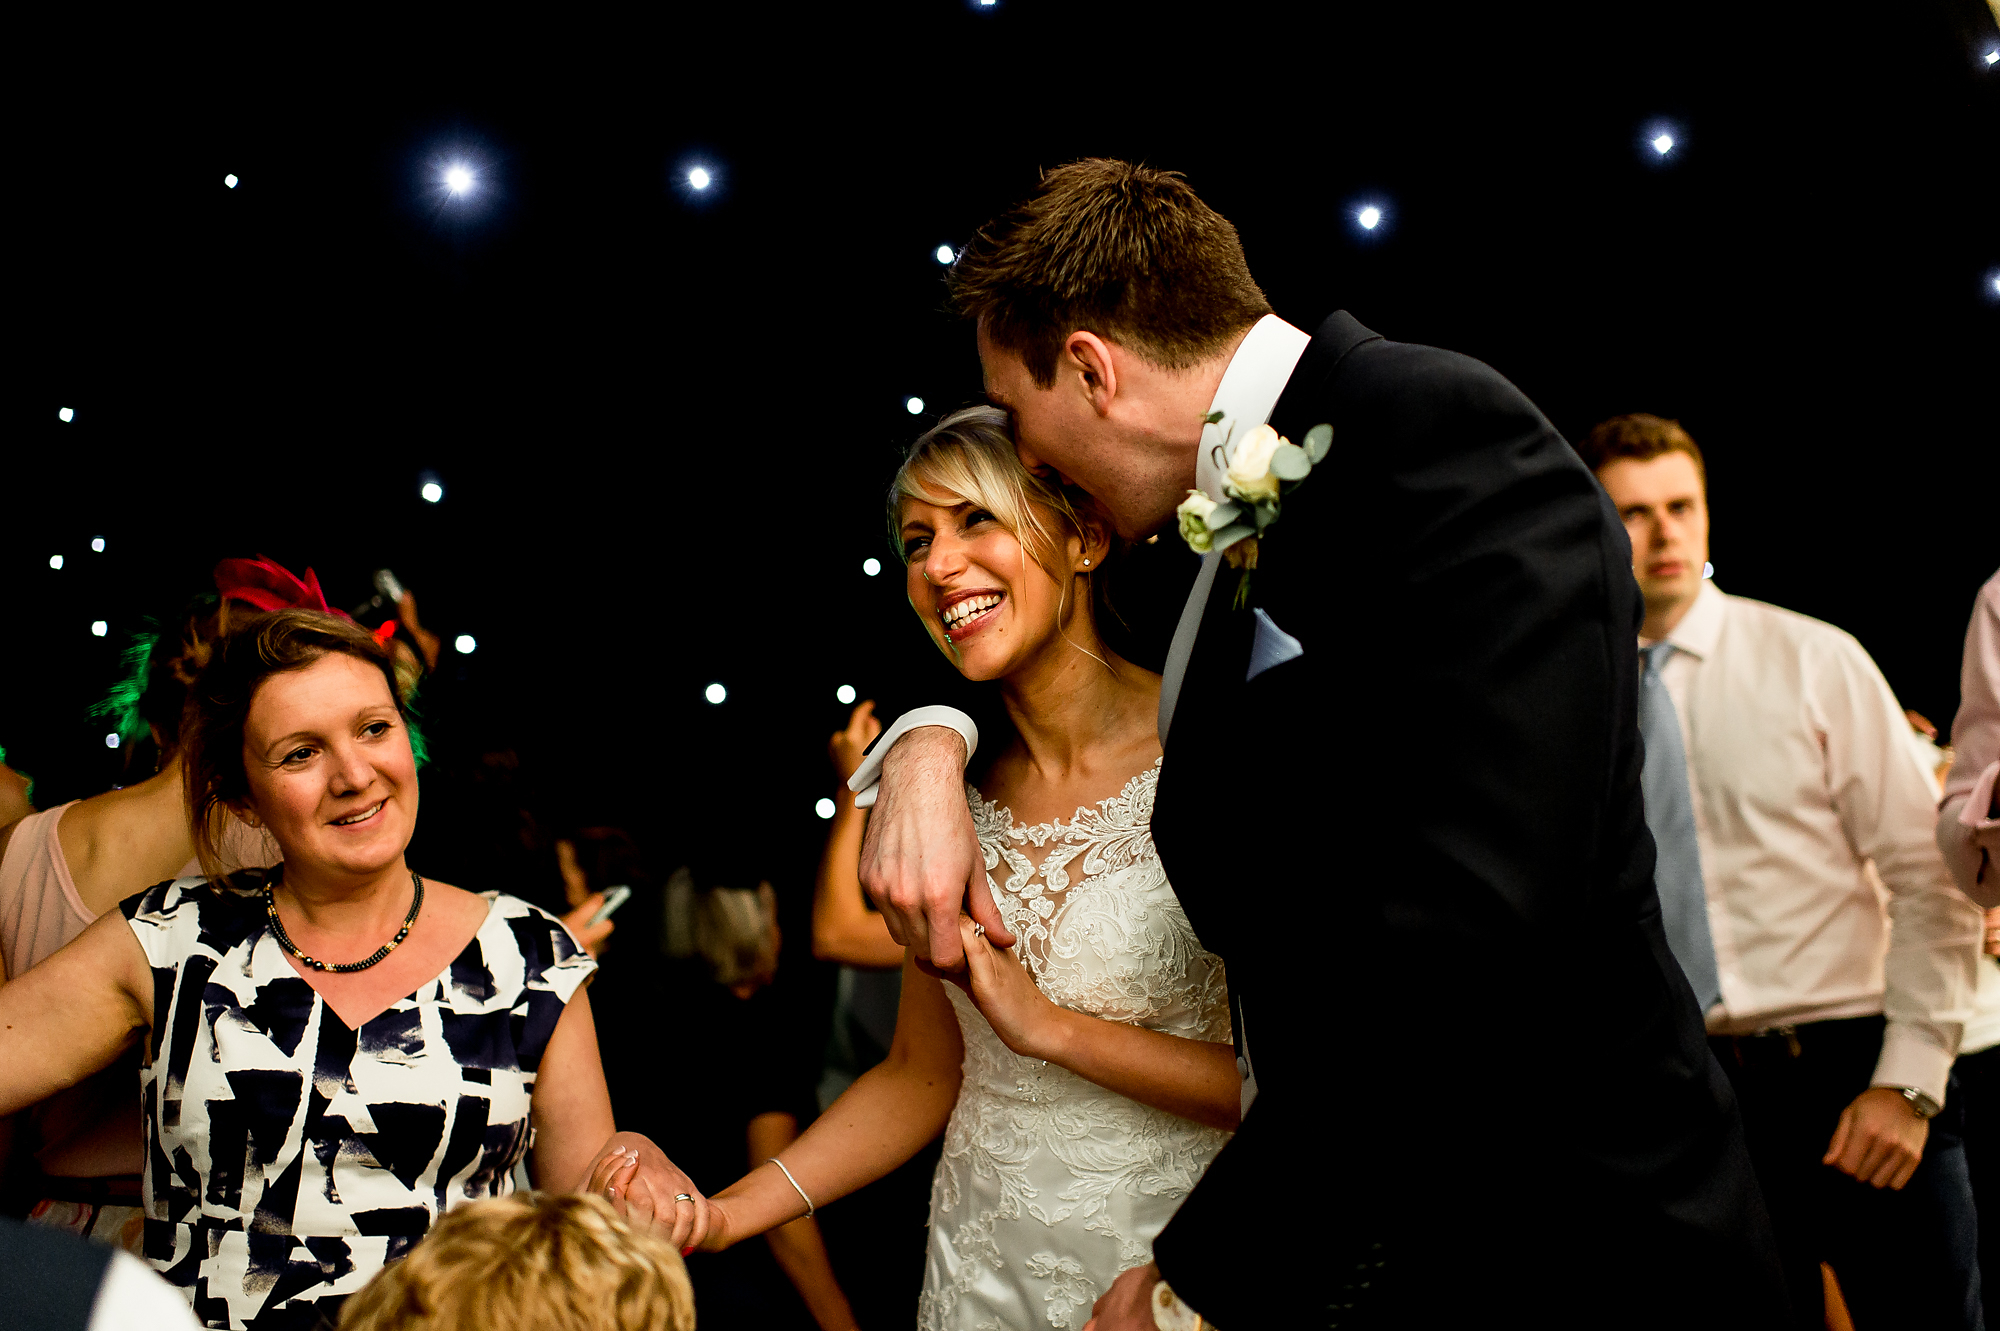 Newburgh Priory wedding 0010